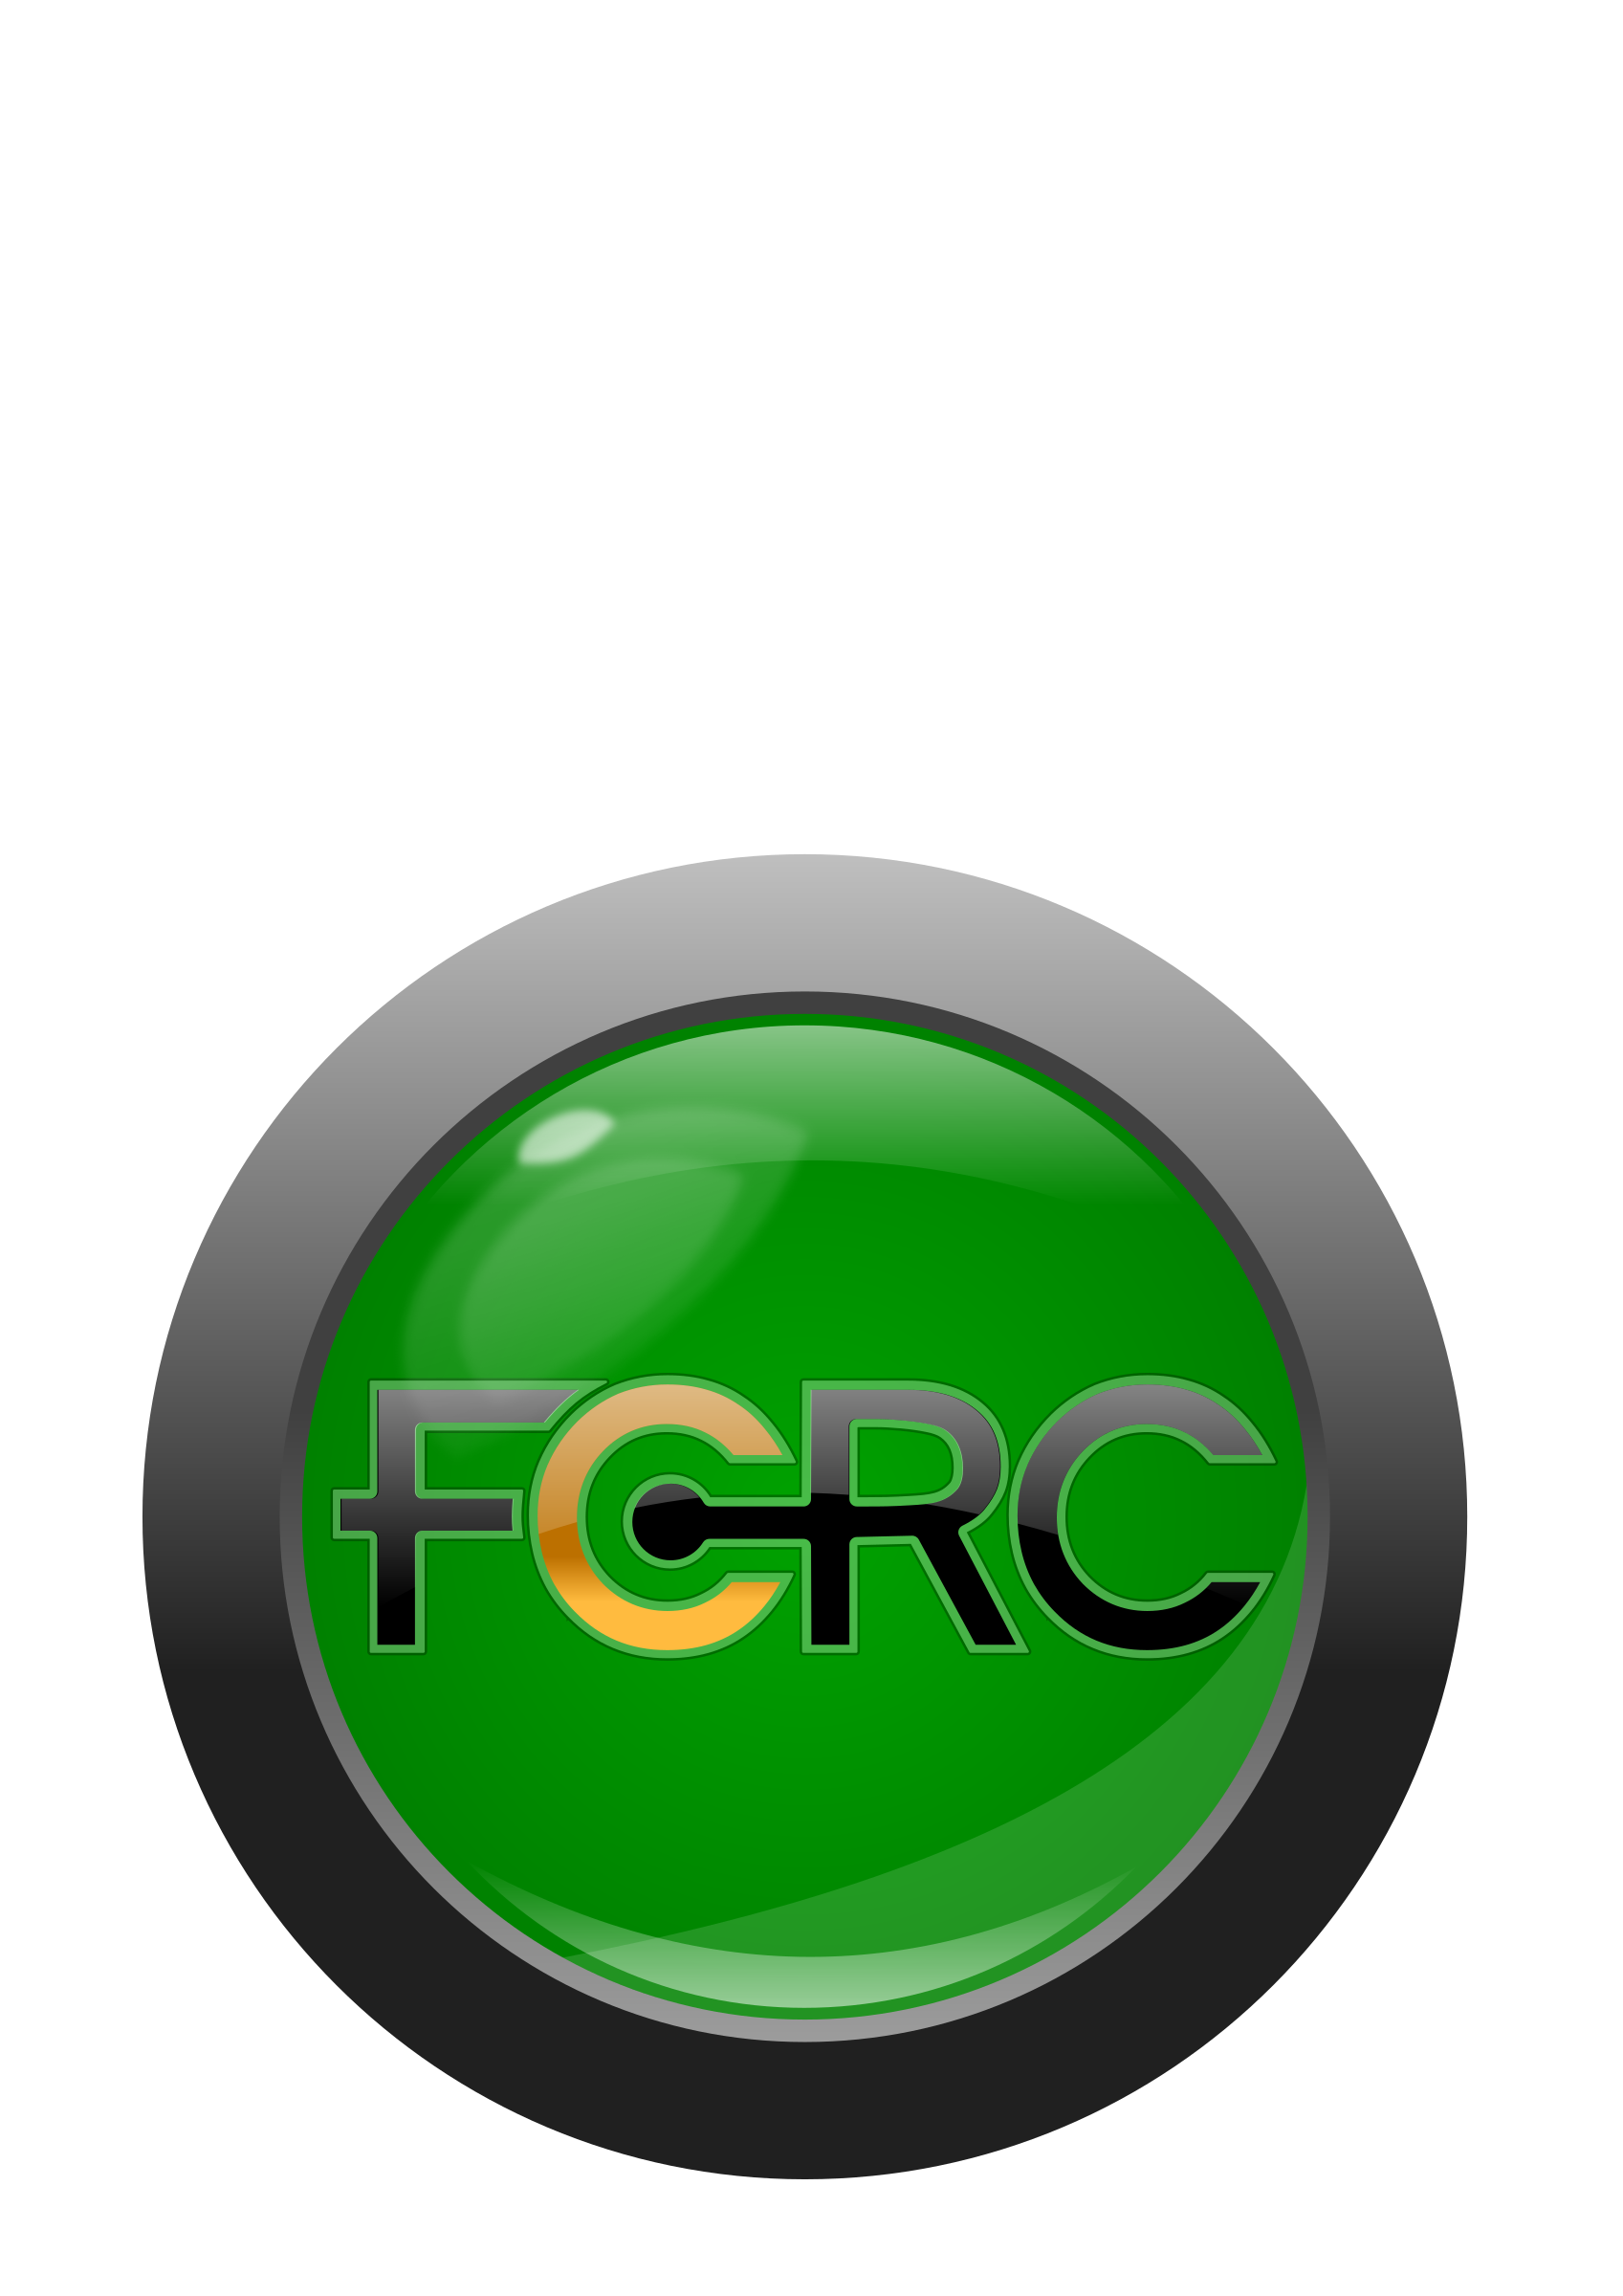 FCRC button/logo with text by timeth